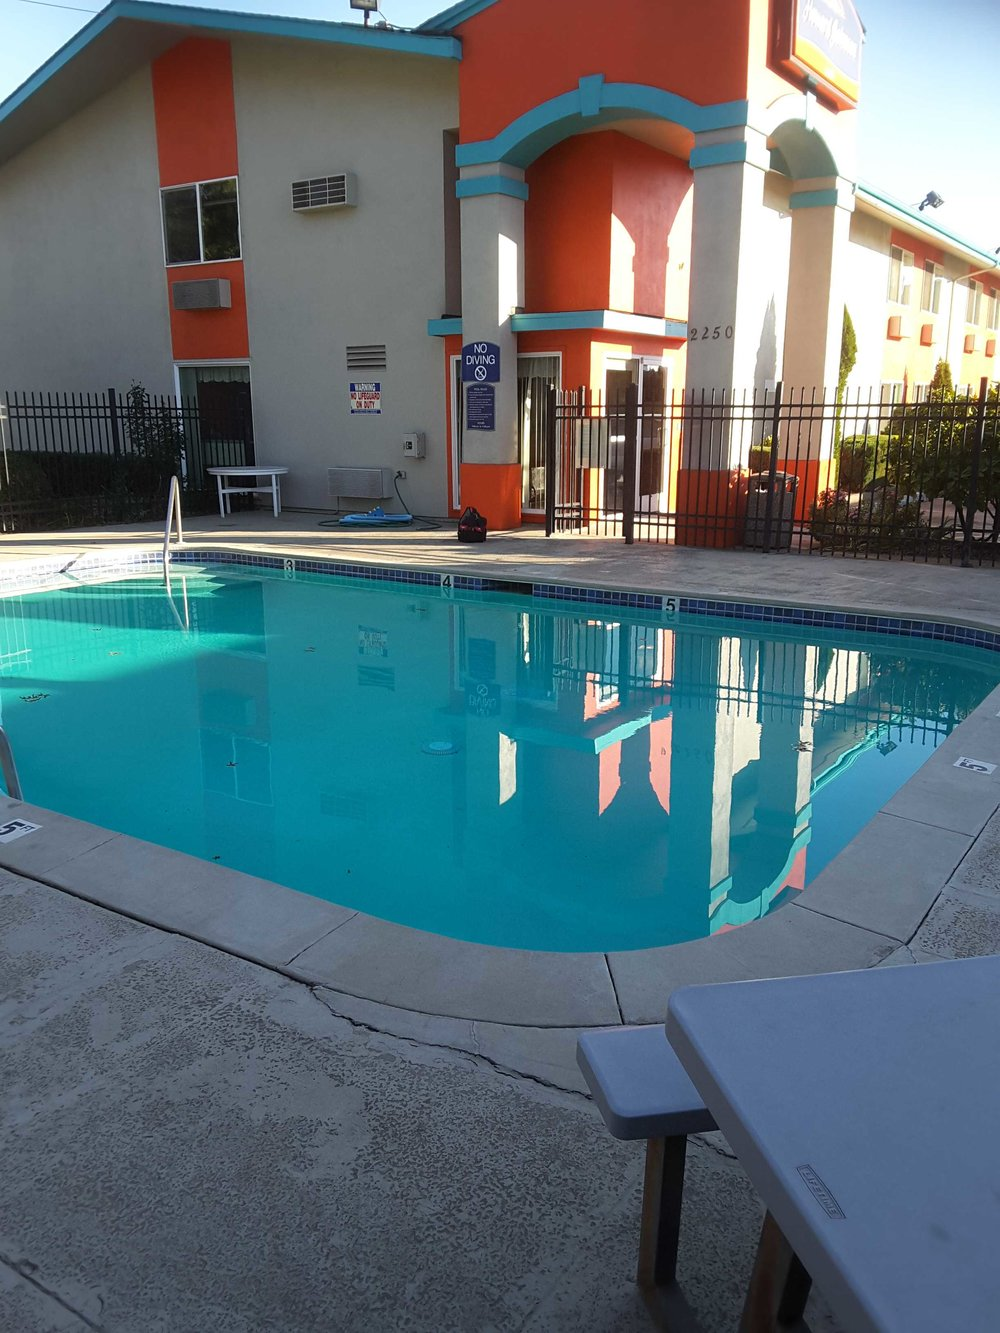 Copy of Copy of Swimming pool inspections